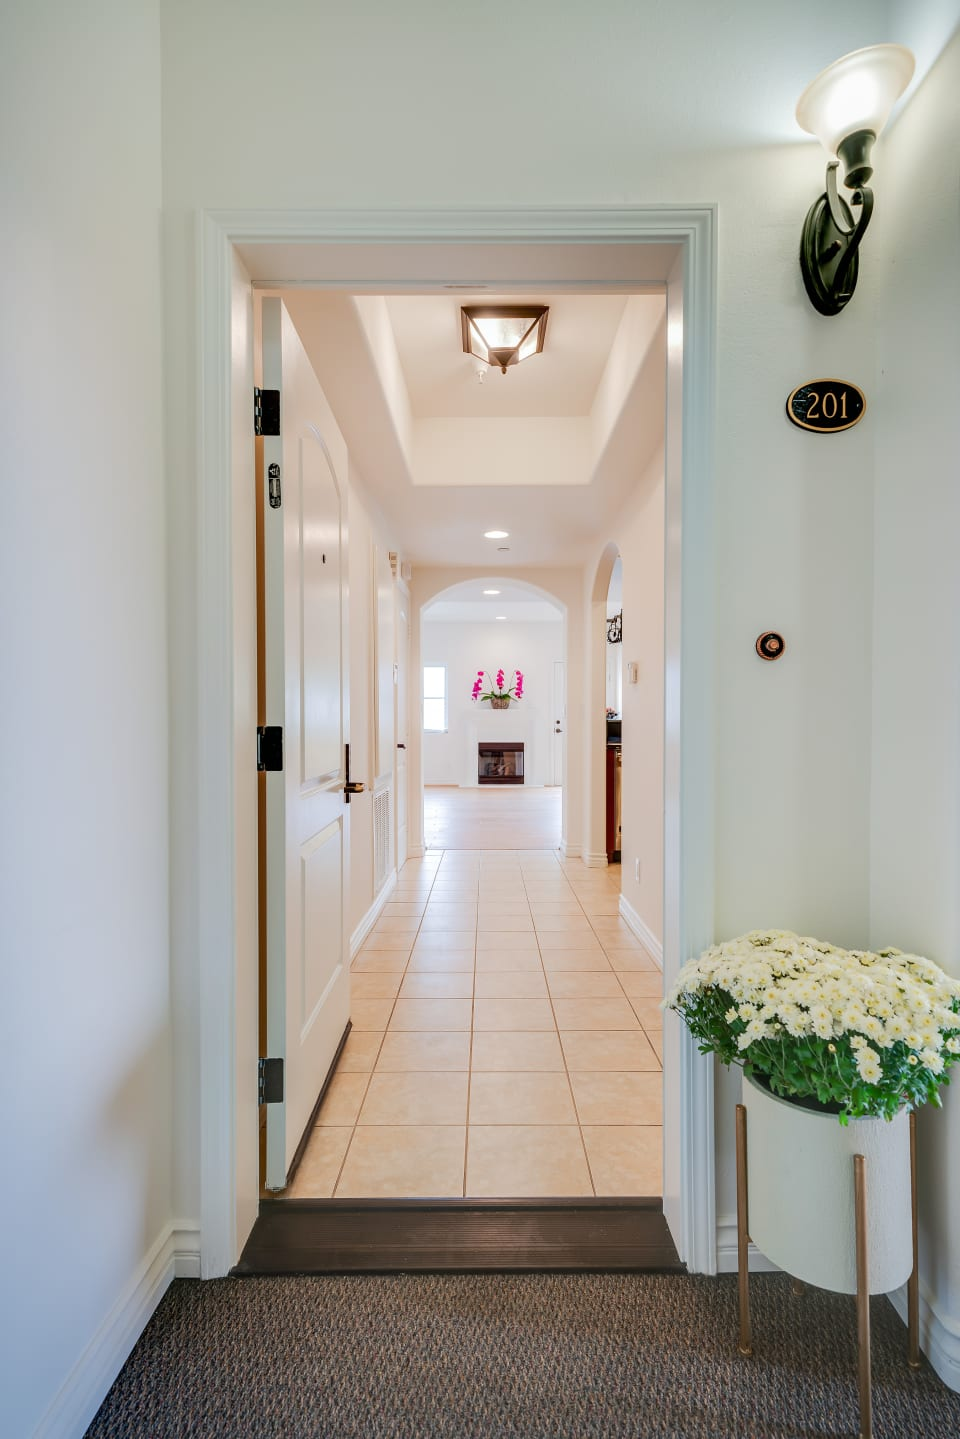 12449 Kling St, #201 preview